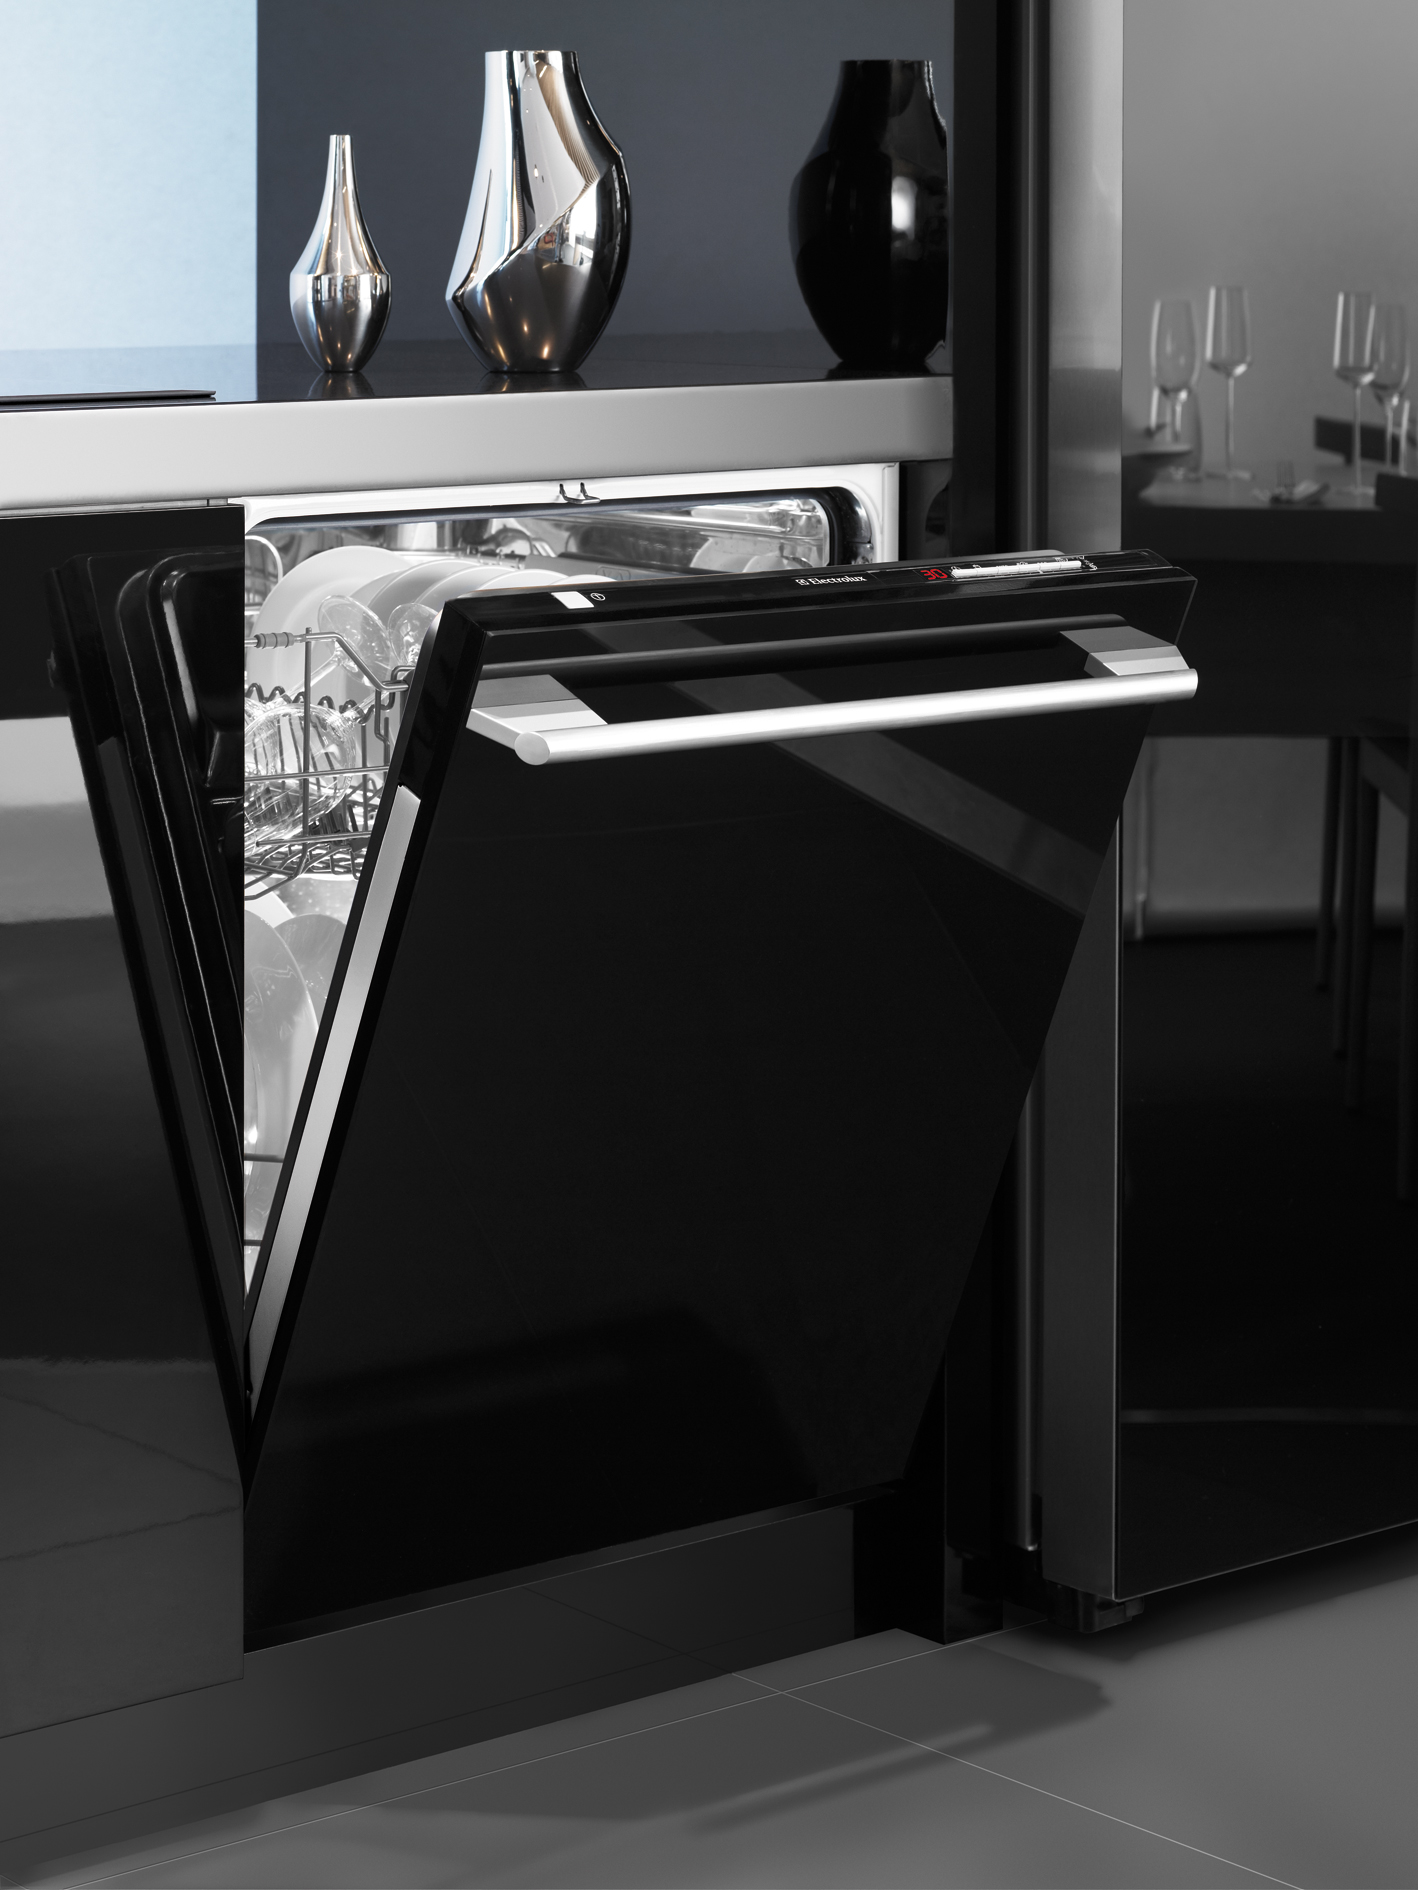 Why Choose An Integrated Dishwasher 171 Appliances Online Blog